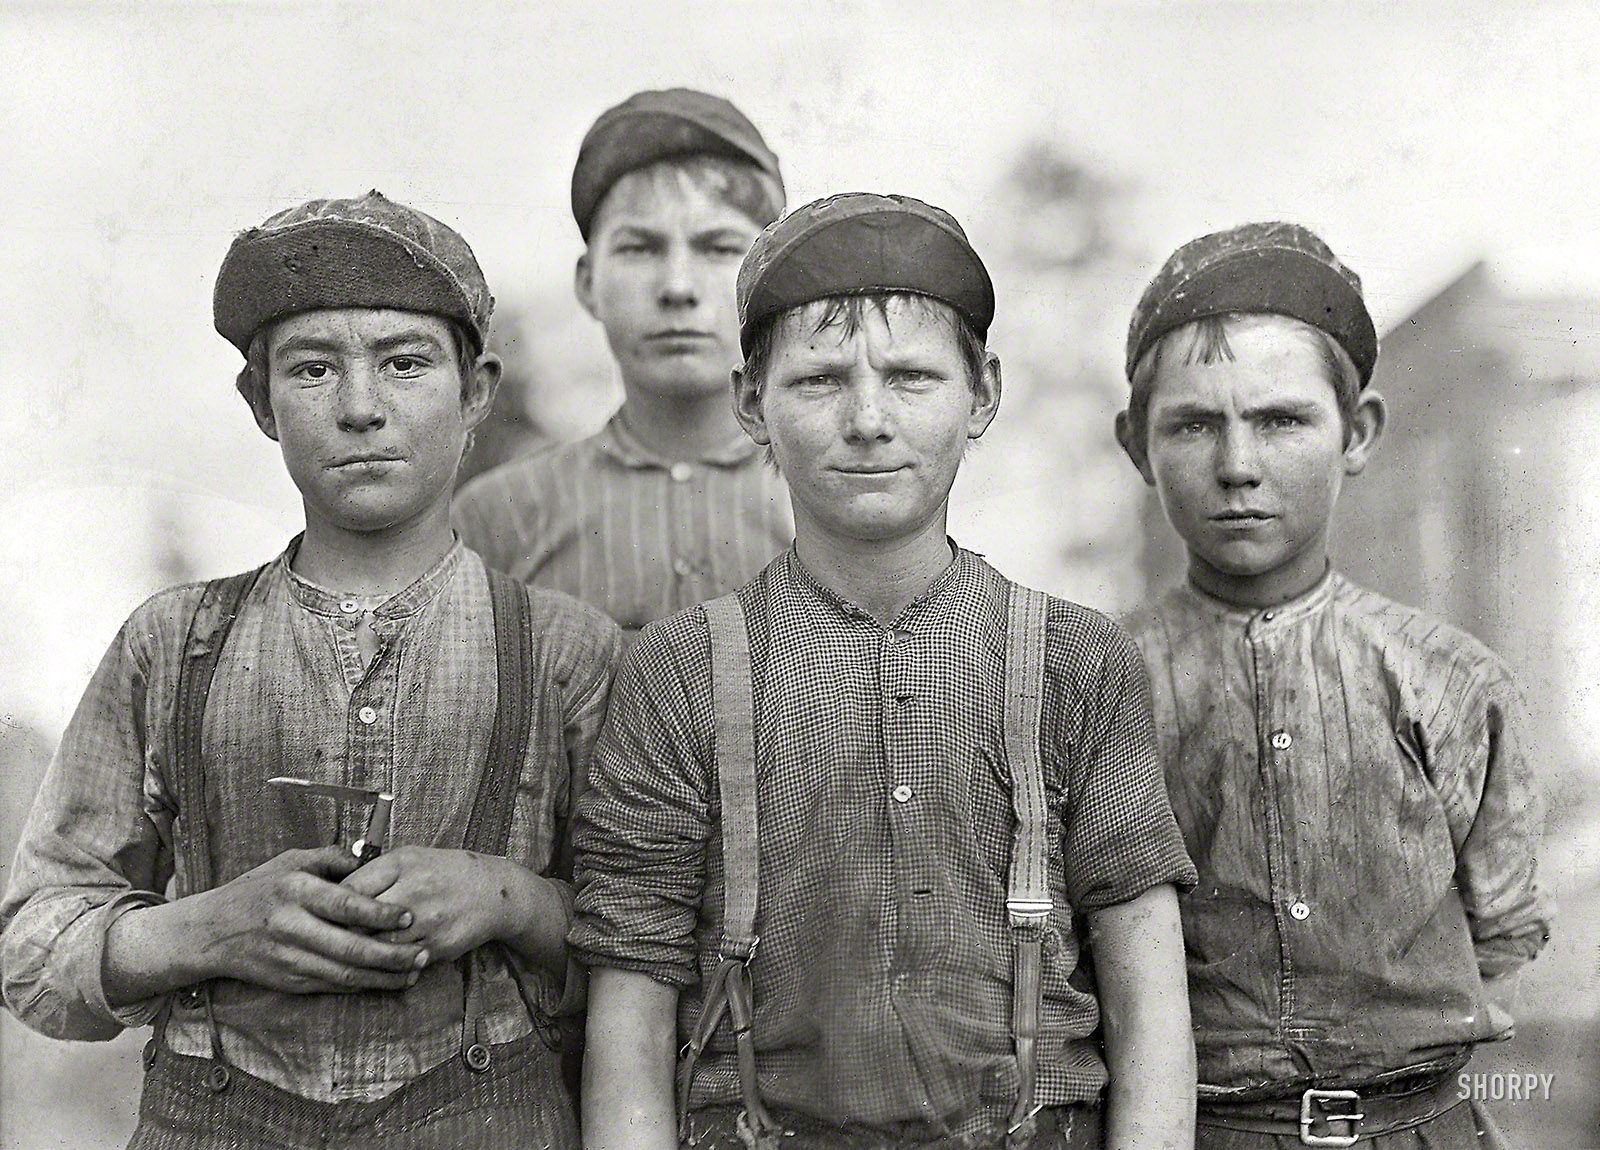 Shorpy Historic Picture Archive :: Some Doffer Boys: 1909 high-resolution  photo